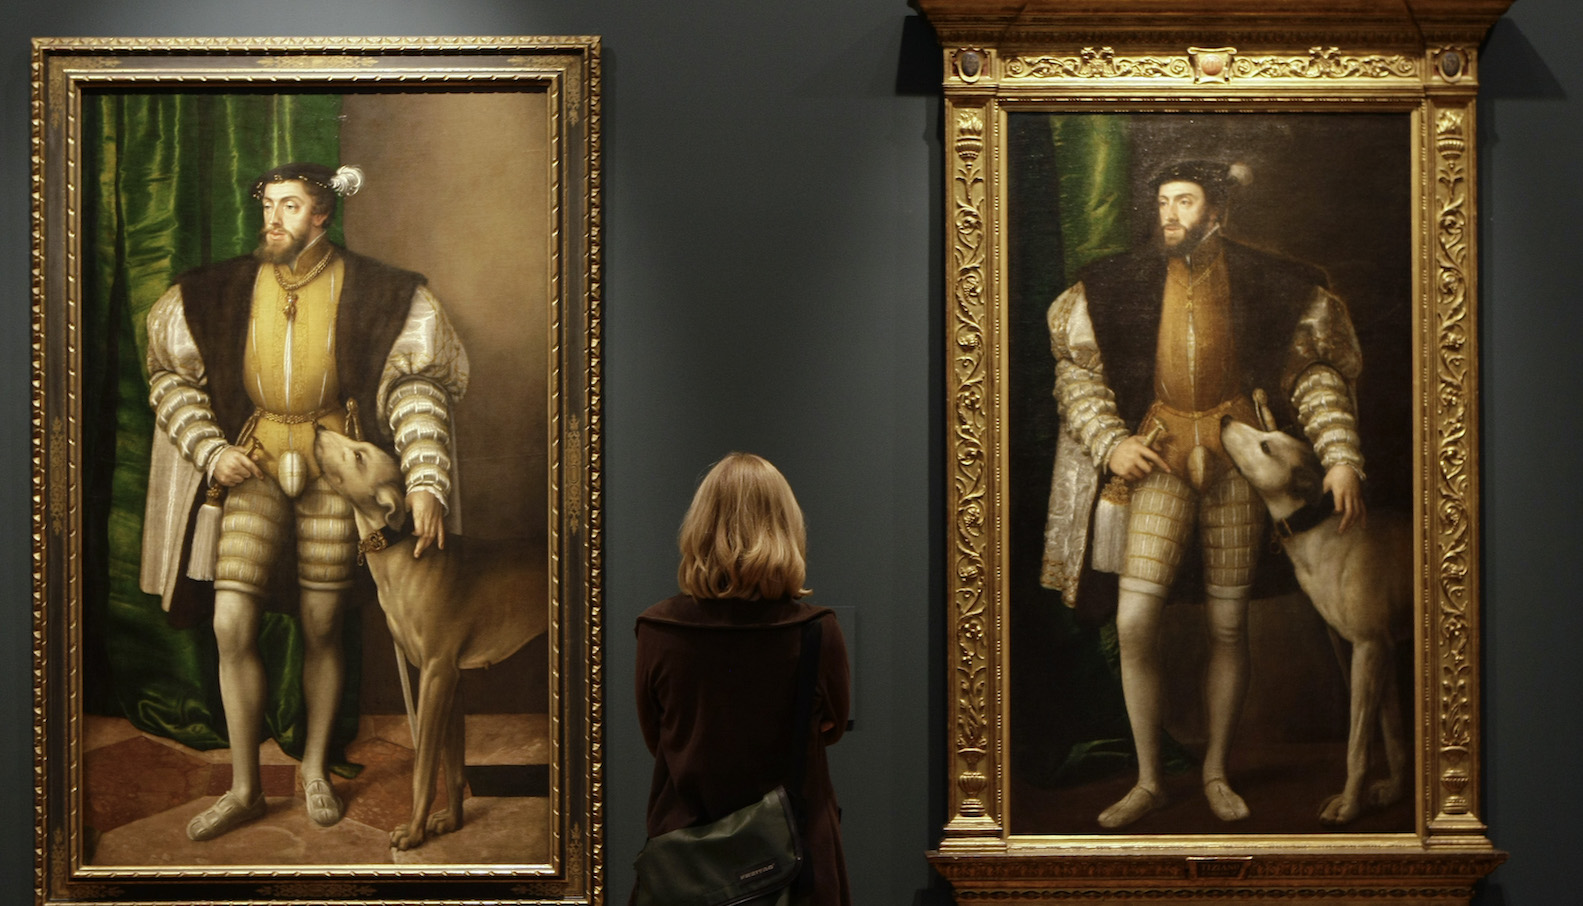 """A woman looks at paintings titled """"Carlos V con un perro"""" by Austrian artist Jacob Seisenegger during the press presentation of the """"The Renaissance Portrait"""" exhibition at Madrid's El Prado museum May 30, 2008. REUTERS/Juan Medina (SPAIN) - RTX6BST"""